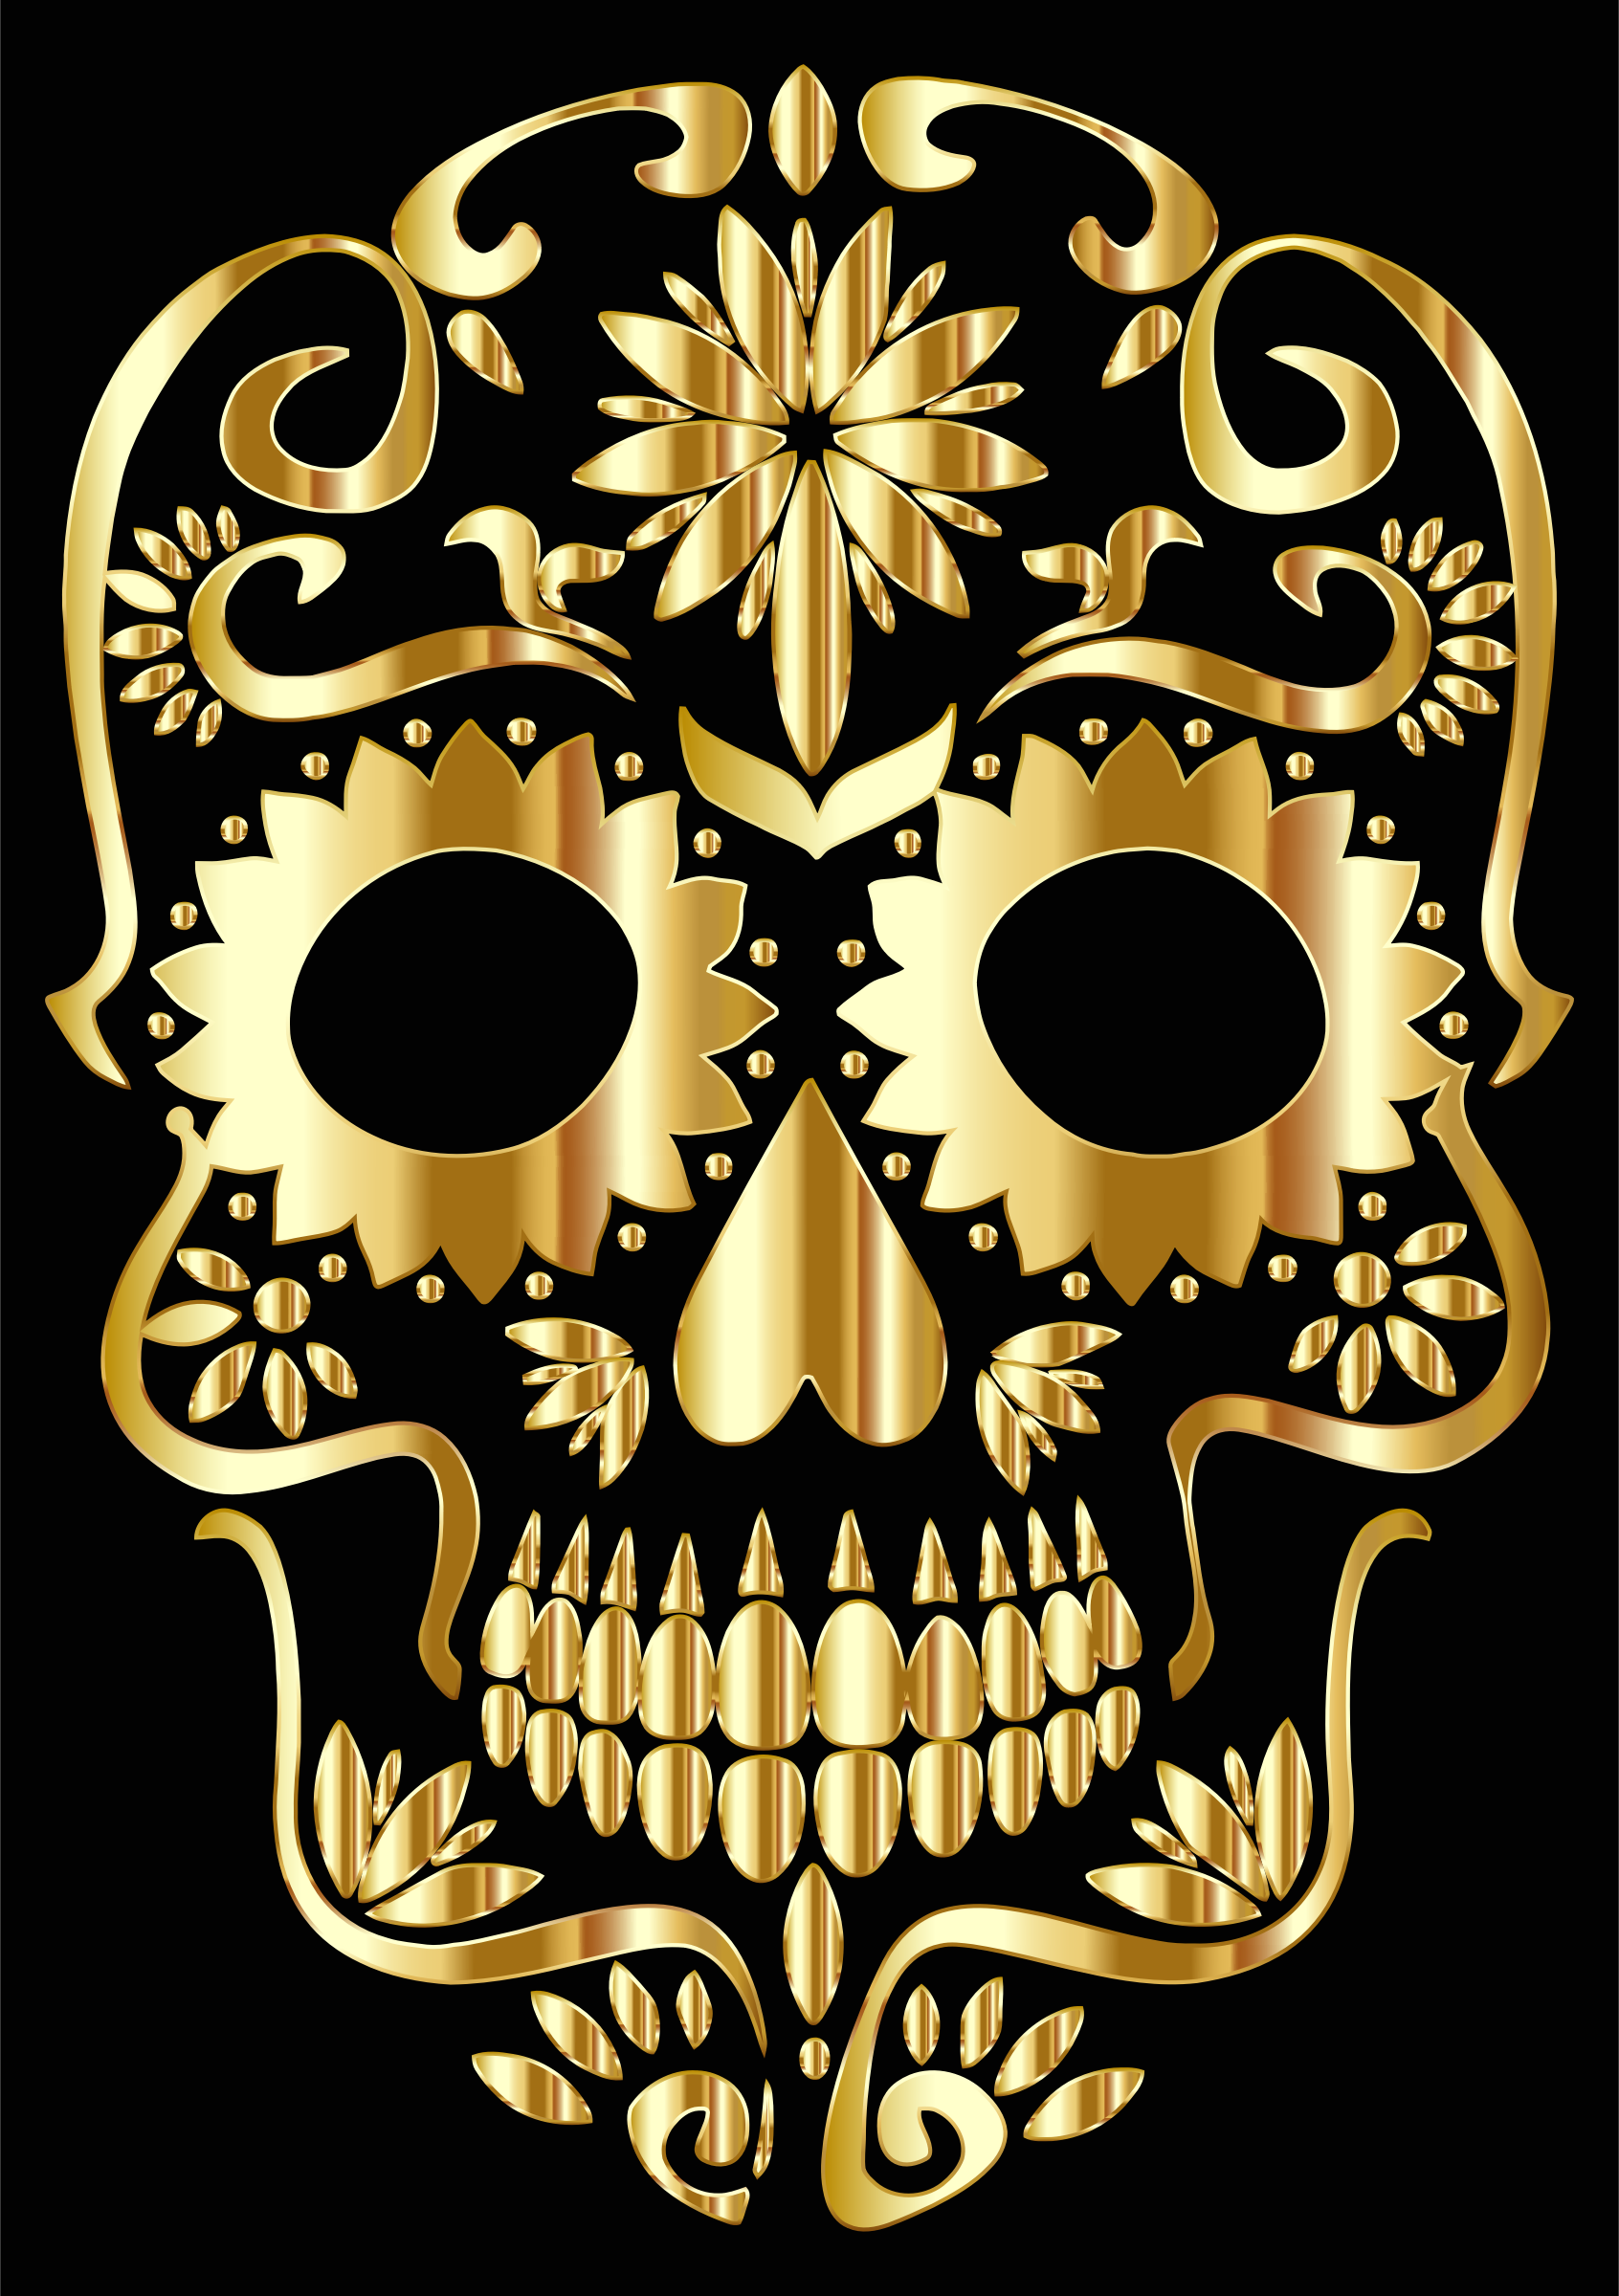 Gold Sugar Skull Silhouette by GDJ